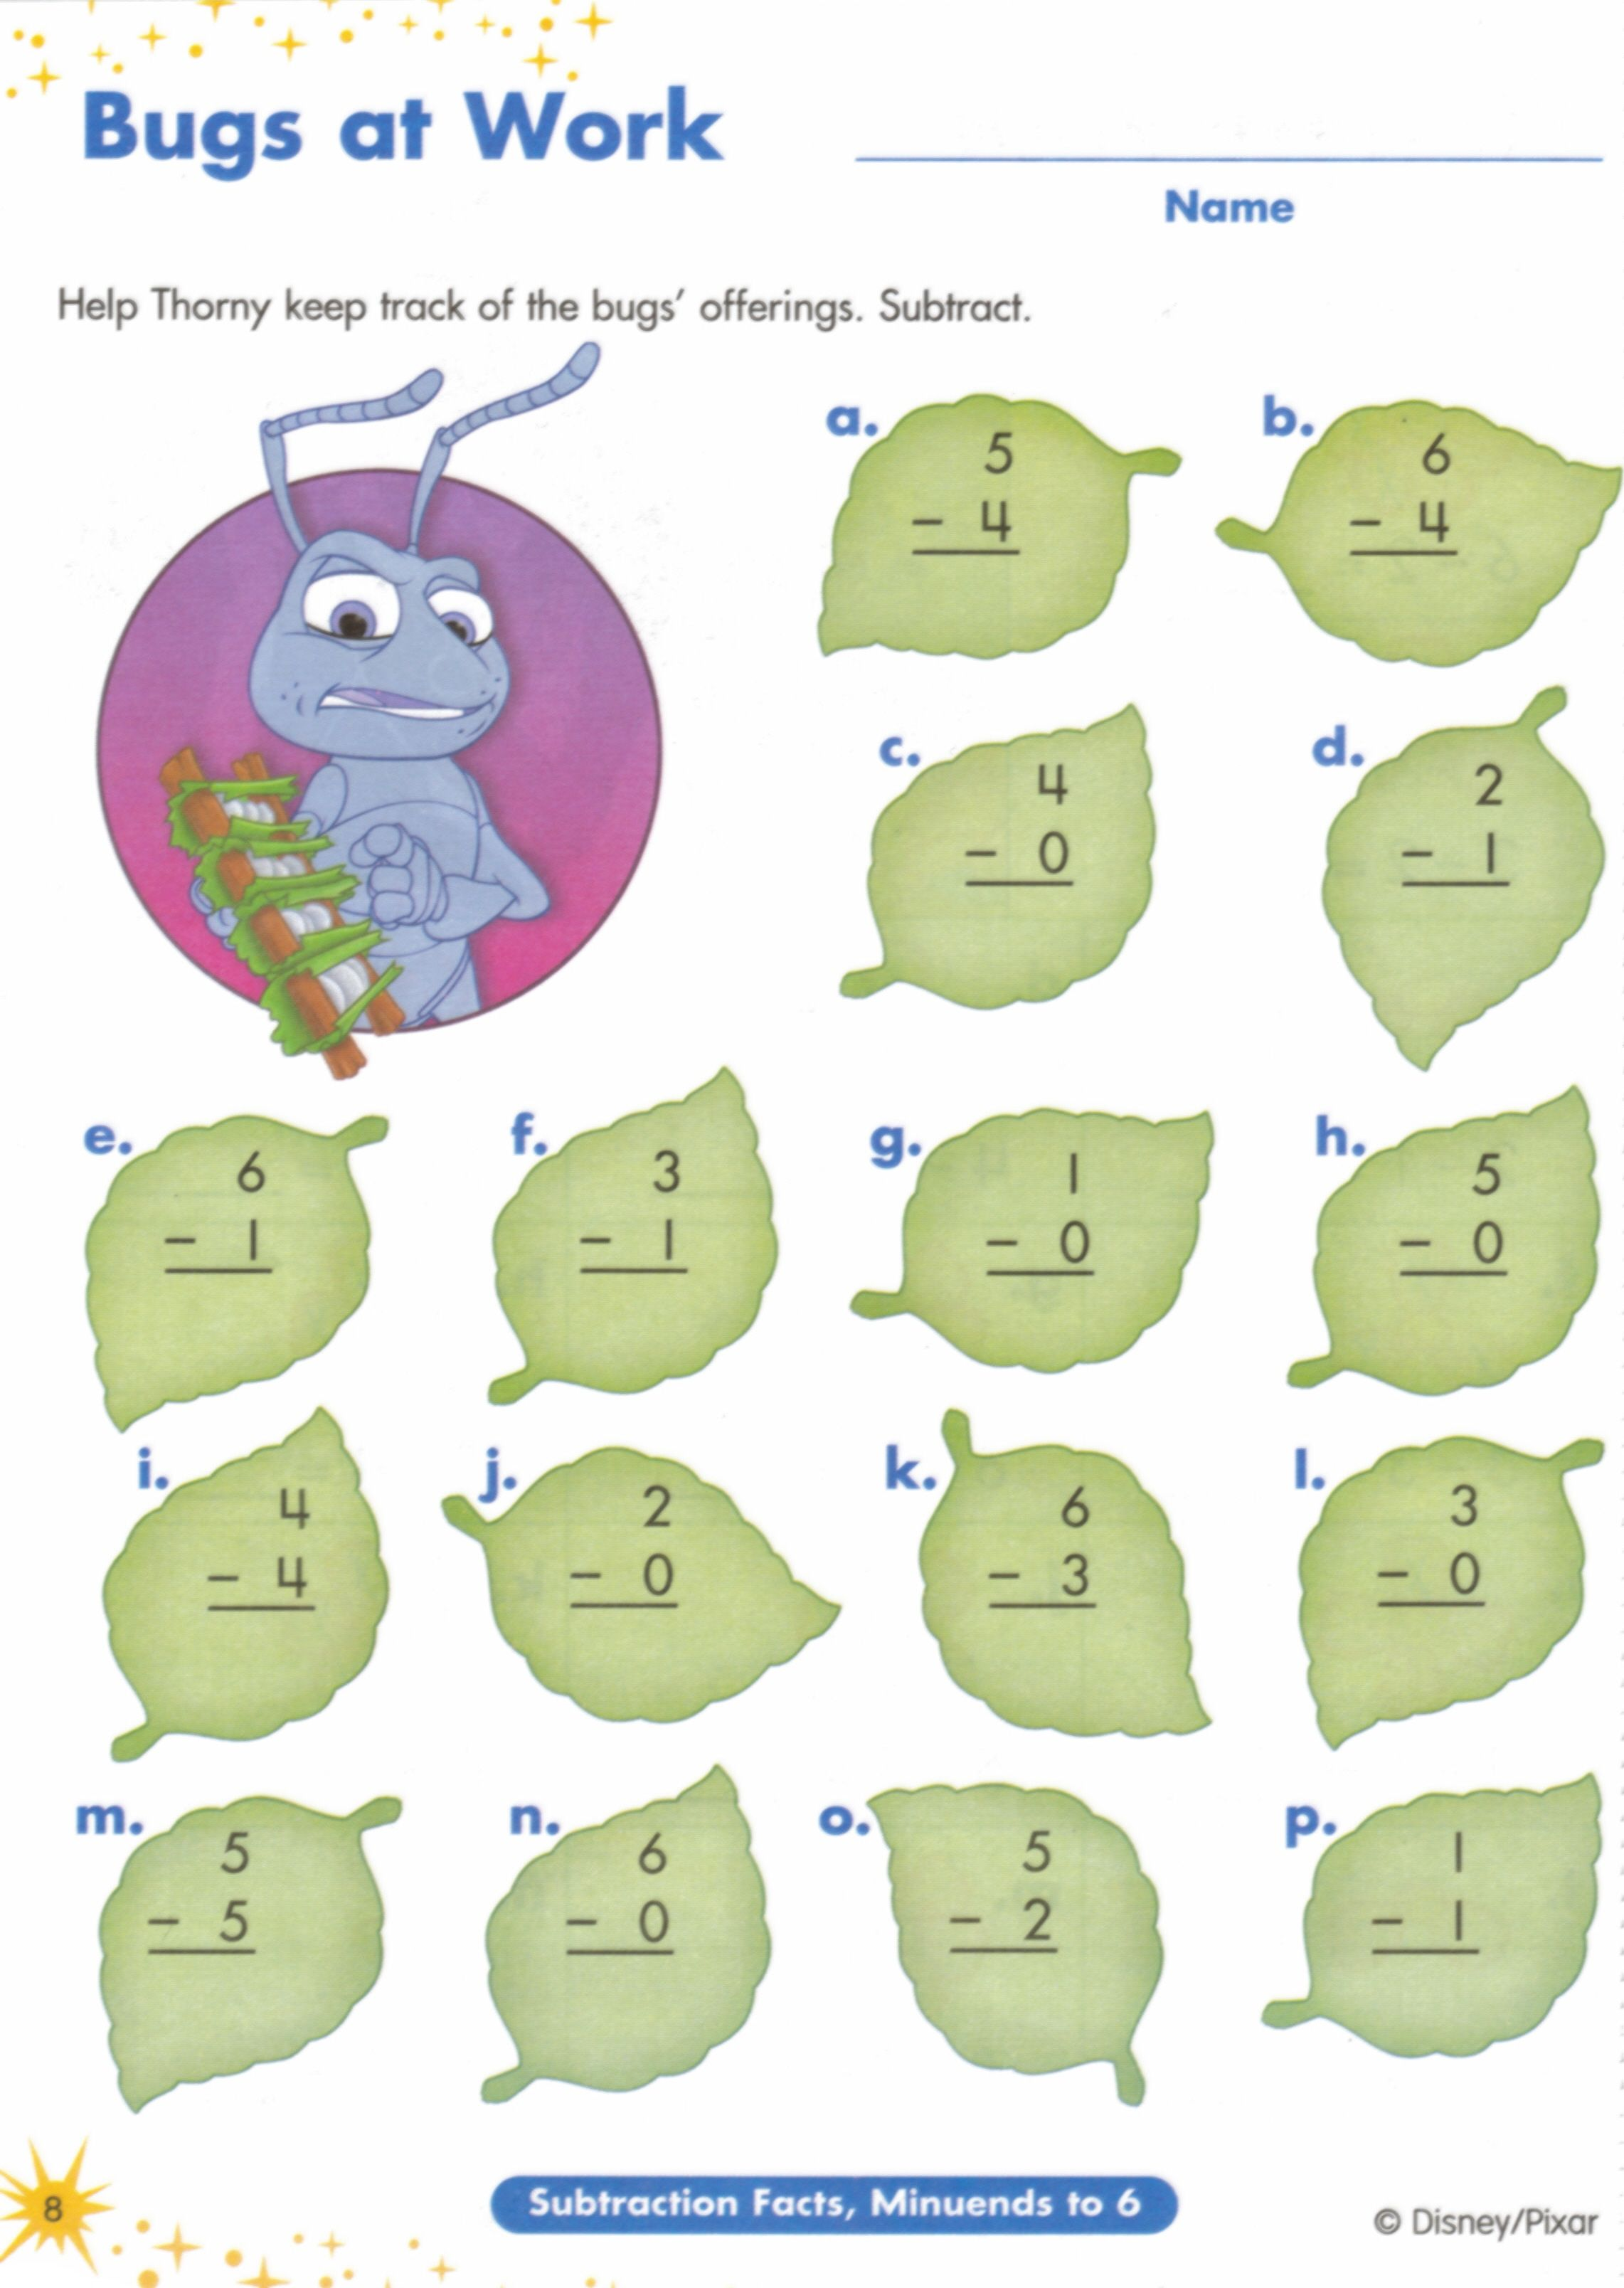 Proatmealus  Outstanding  Images About Worksheets On Pinterest  Fun Facts For Kids  With Licious  Images About Worksheets On Pinterest  Fun Facts For Kids Earth Day Worksheets And Jungles With Breathtaking Worksheets For Sight Words Also Producers Consumers Decomposers Worksheet In Addition Food Webs And Food Chains Worksheets And Handwriting Worksheets For Nd Grade As Well As Rounding Numbers Worksheets Th Grade Additionally Rst Grade Math Worksheets From Pinterestcom With Proatmealus  Licious  Images About Worksheets On Pinterest  Fun Facts For Kids  With Breathtaking  Images About Worksheets On Pinterest  Fun Facts For Kids Earth Day Worksheets And Jungles And Outstanding Worksheets For Sight Words Also Producers Consumers Decomposers Worksheet In Addition Food Webs And Food Chains Worksheets From Pinterestcom